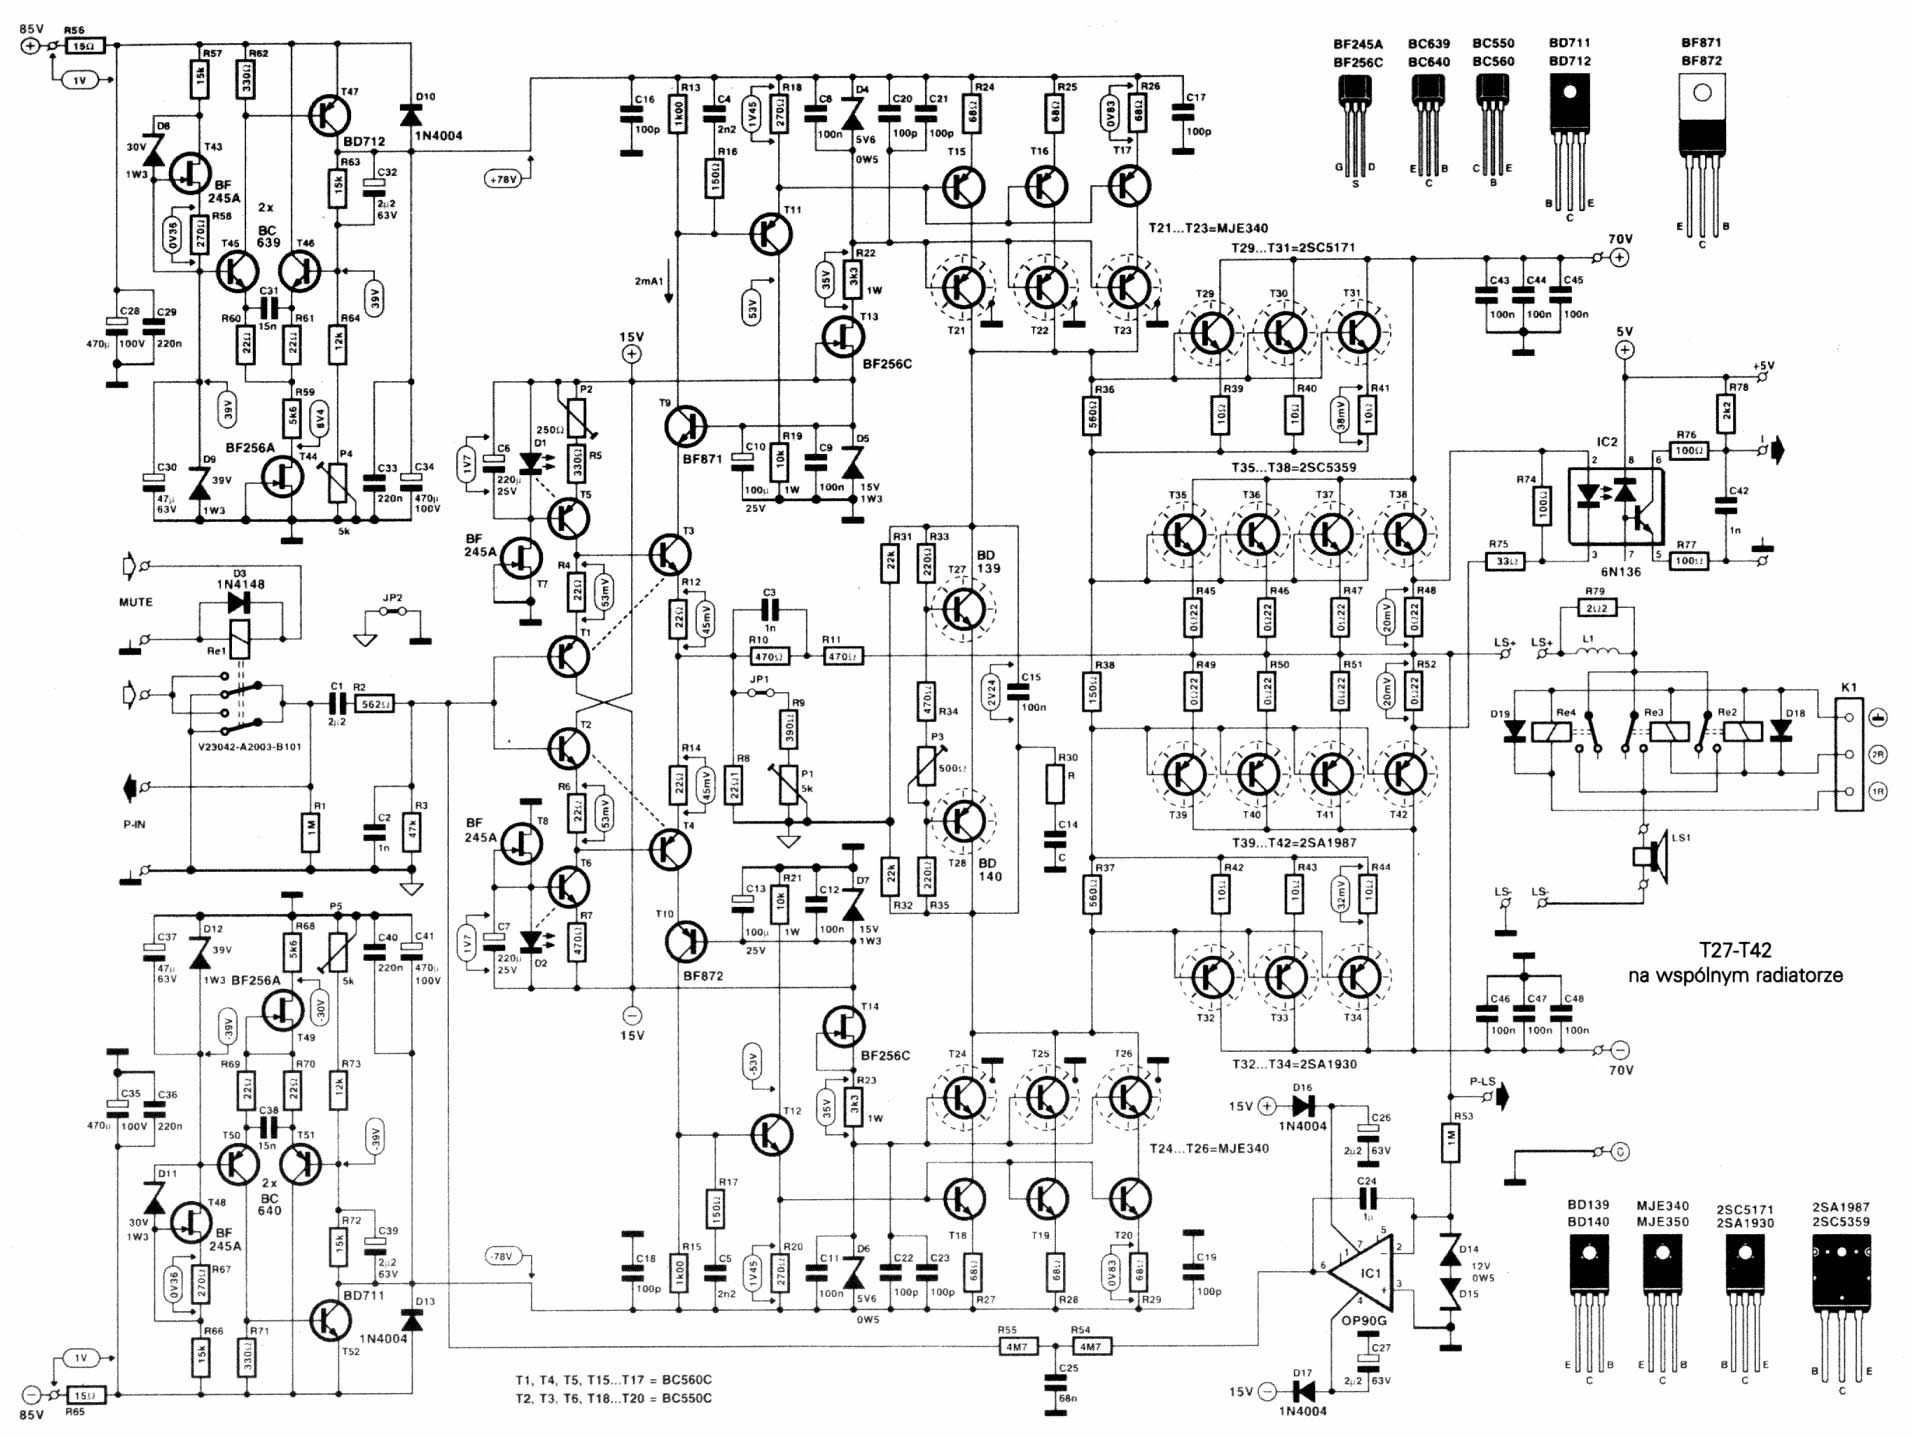 Car Stereo Wiring Diagram furthermore Guitar Pre  Circuit Based Fet further Audio Mixer 6 Channel Circuit as well Watch as well John Deere Lx176 Lawn Tractor Key Switch Wiring. on stereo equalizer schematic